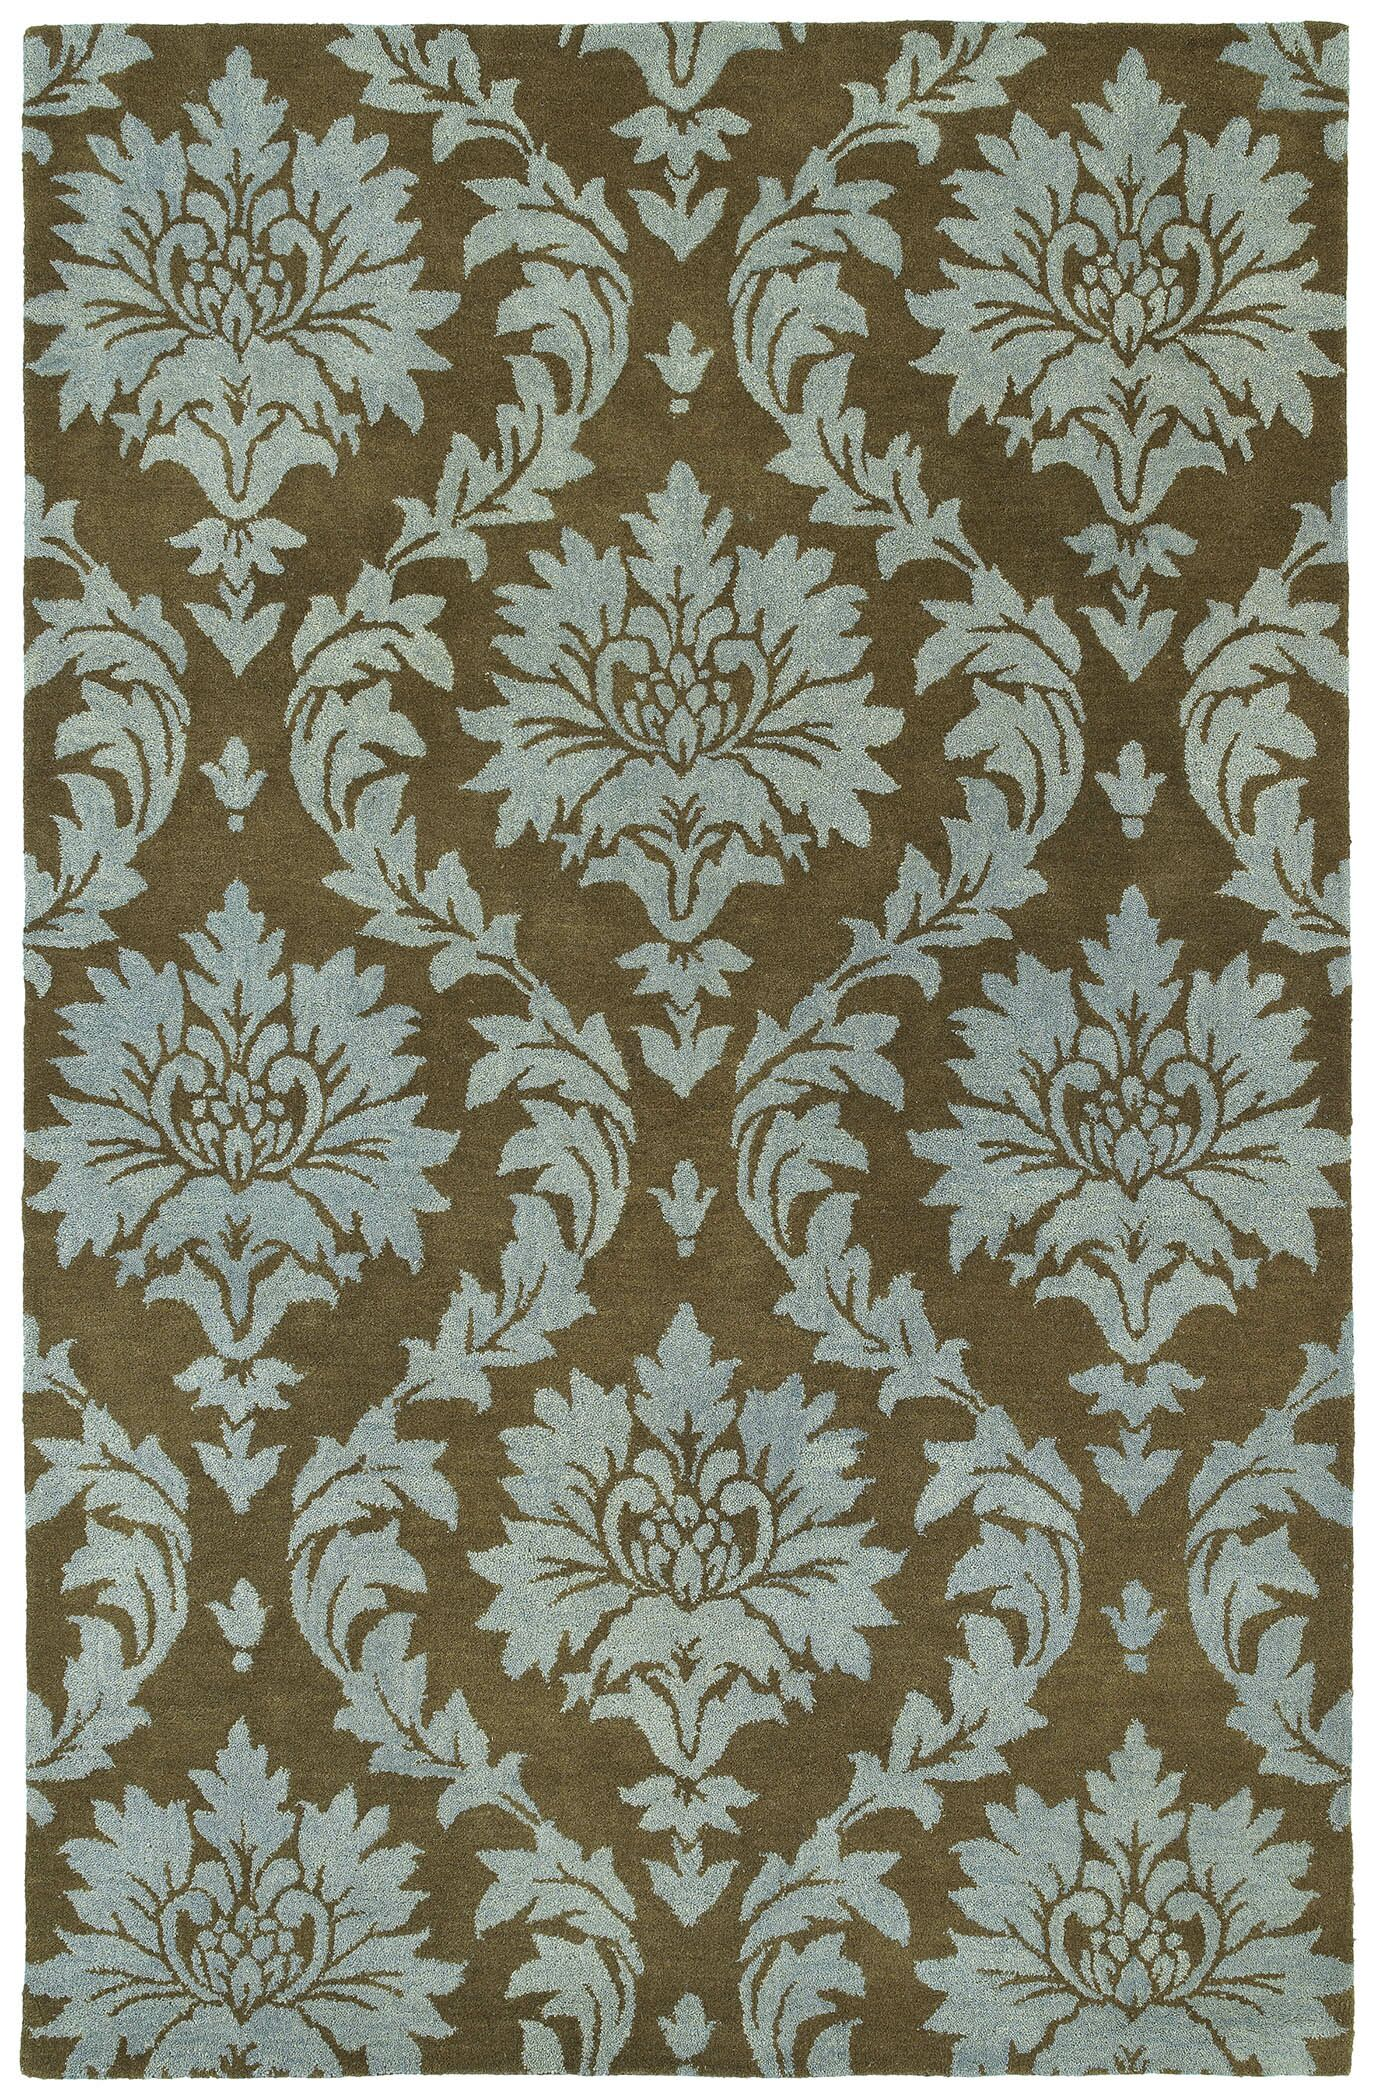 Drewery Spa Area Rug Rug Size: Rectangle 9'6